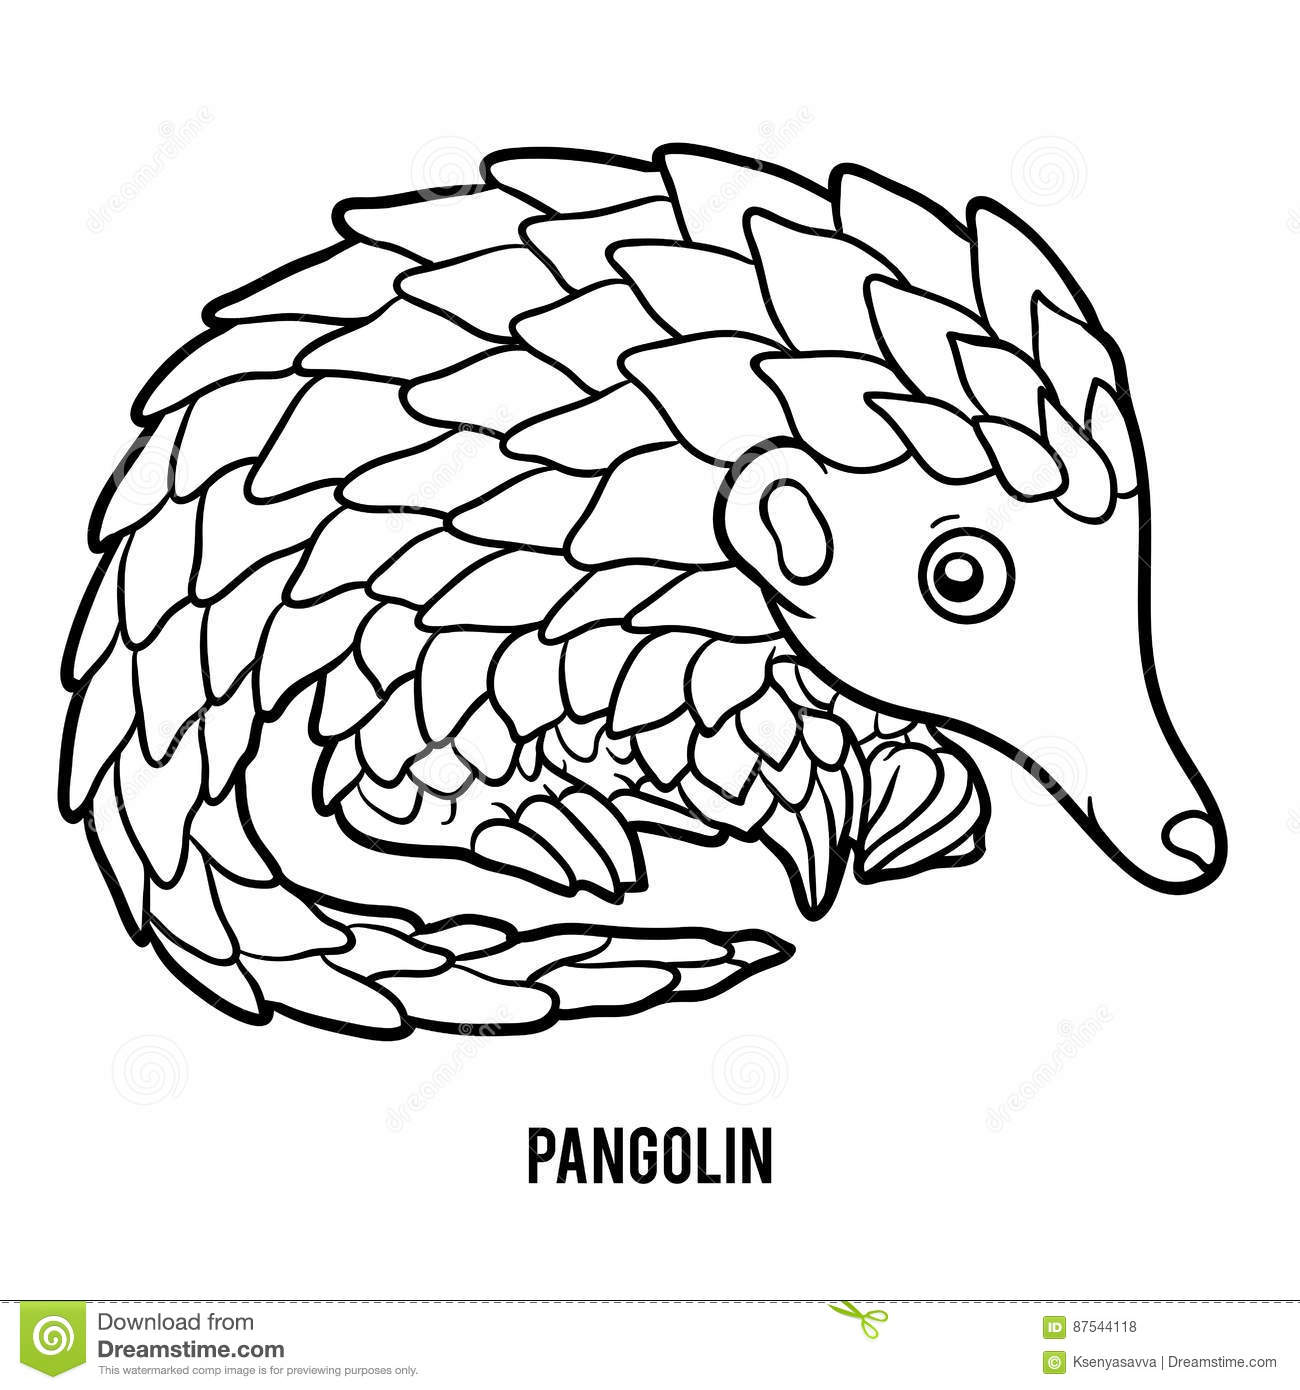 Pangolin Cartoons, Illustrations & Vector Stock Images